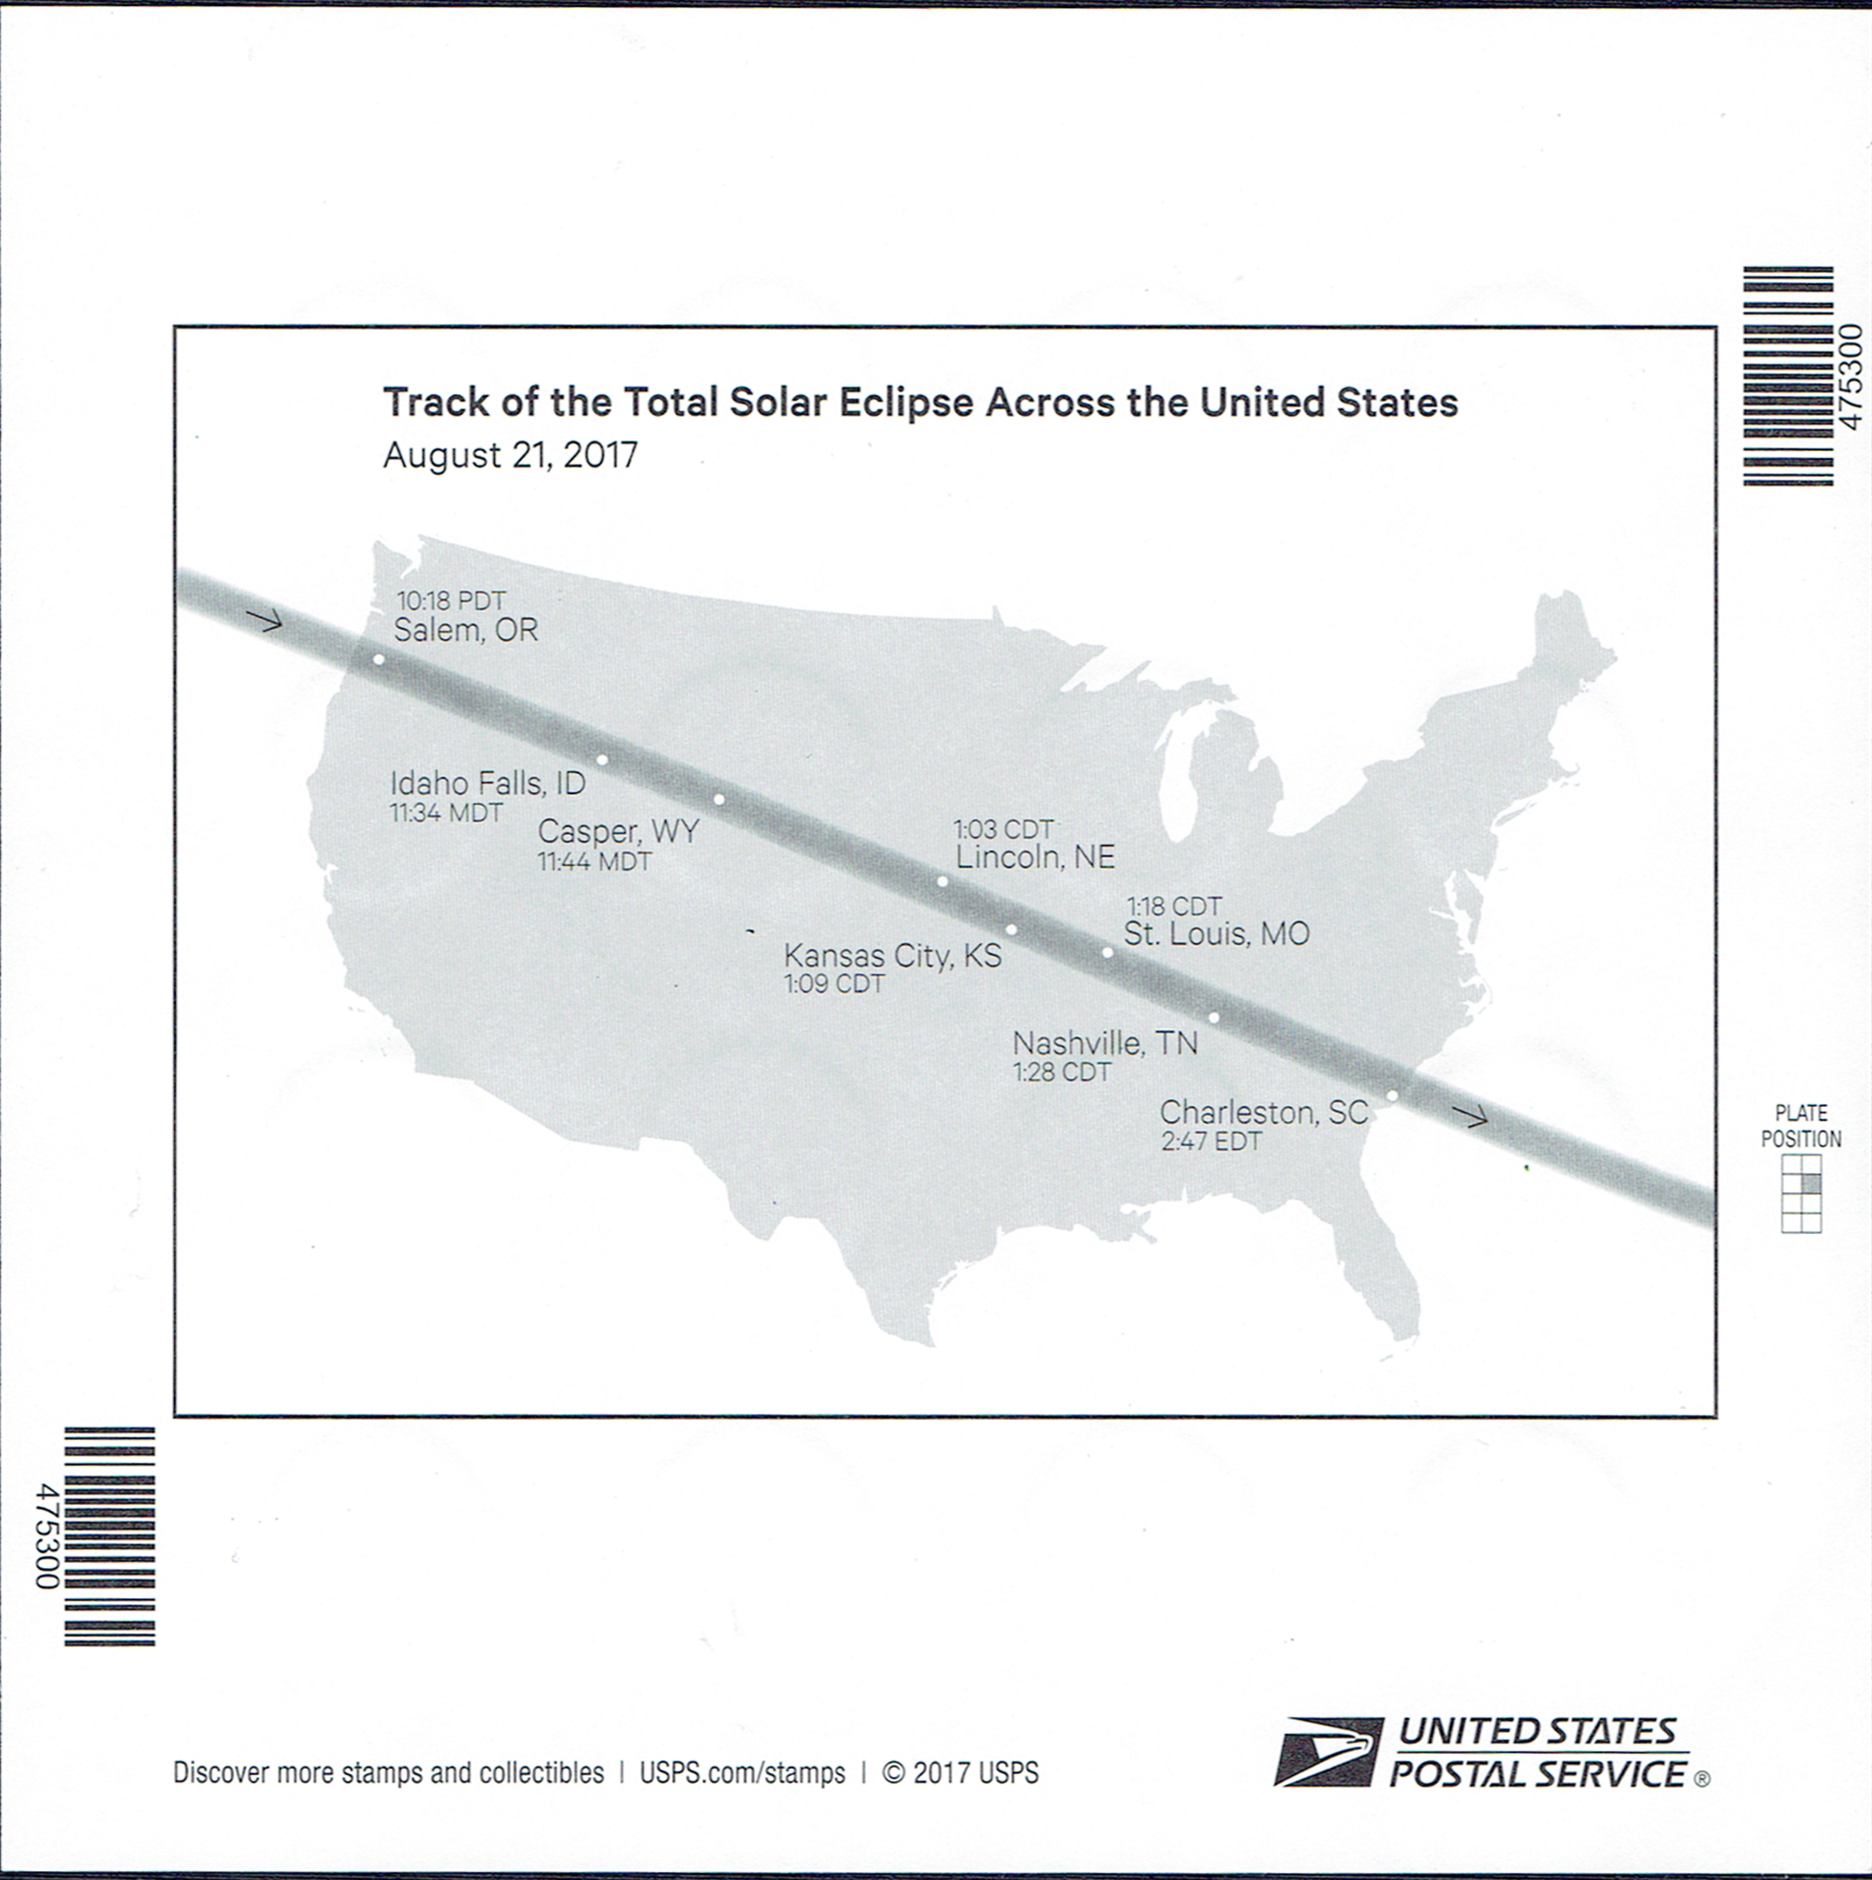 United States #5211 (2017) reverse of full pane with map showing path of totality for the August 21, 2017 total solar eclipse